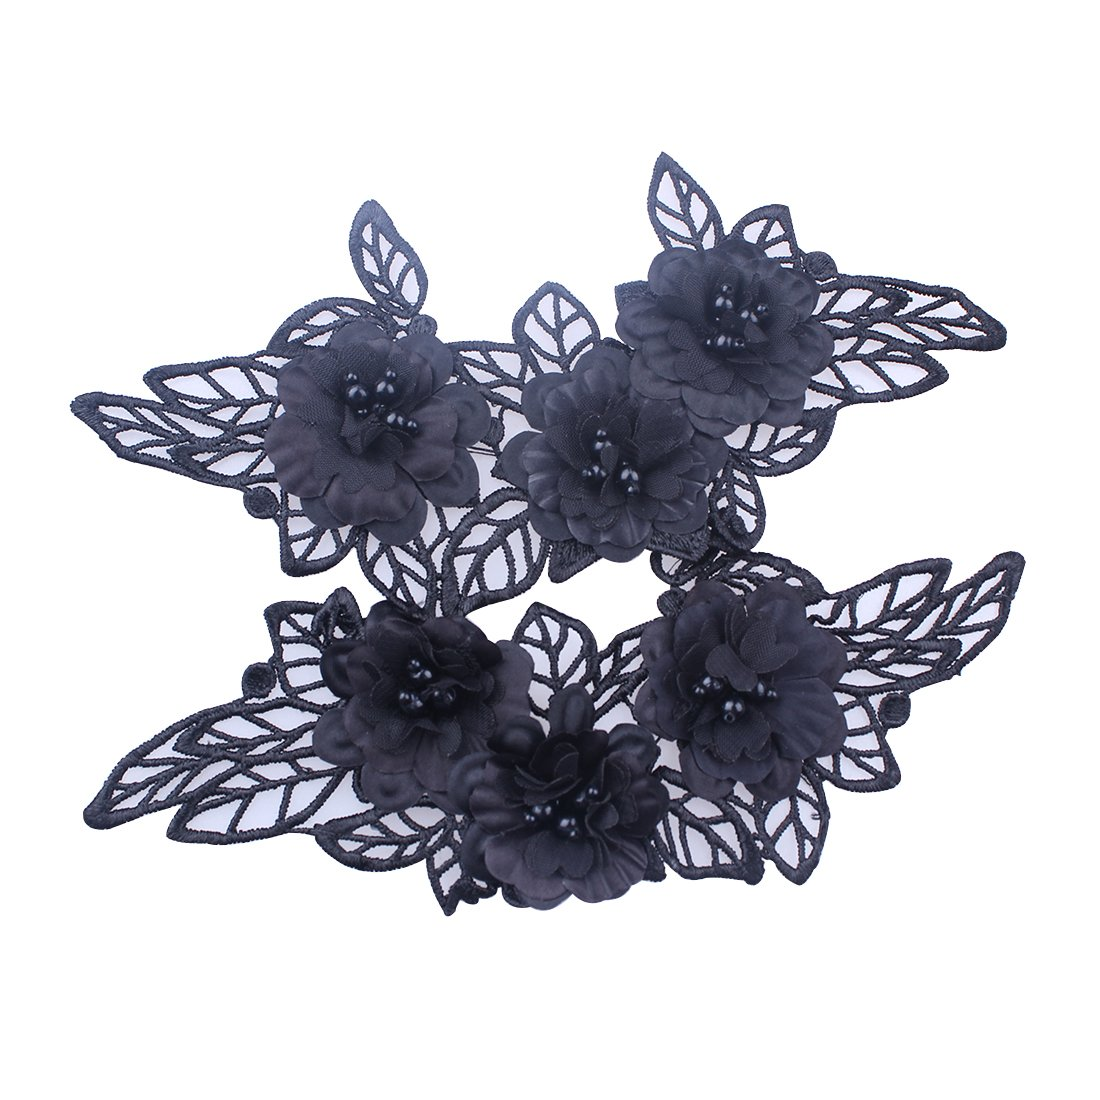 2pcs Embroidery Flower Patches Black 3D Lace Applique Collar Sewing On Craft (Style A) KimmyKu KM0296-1